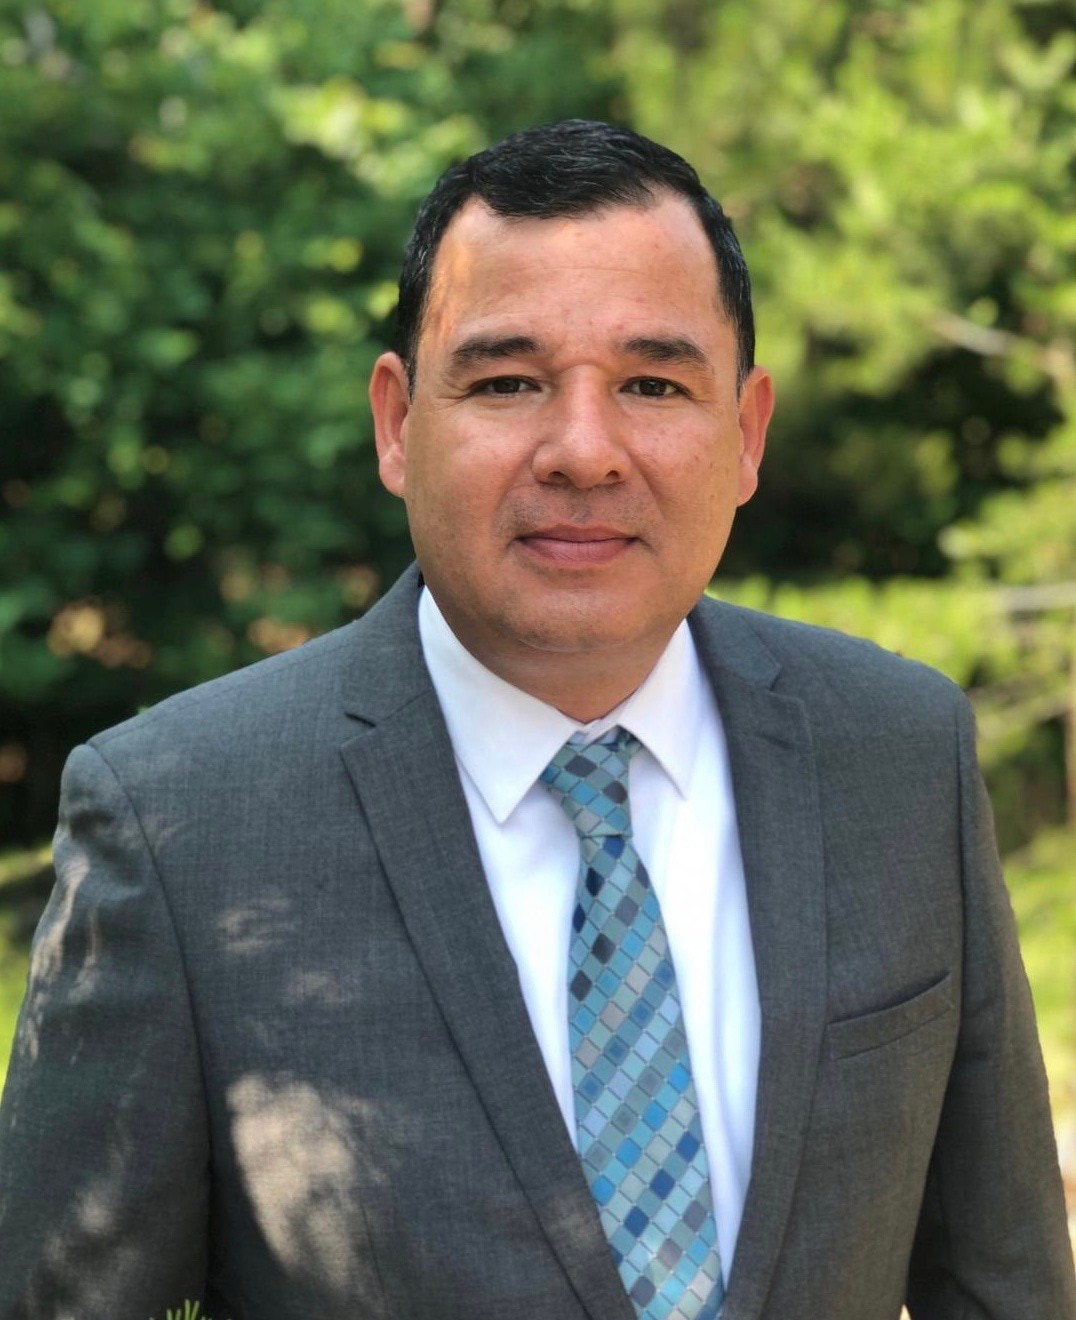 OSVALDO GUTIERREZ Financial Professional & Insurance Agent